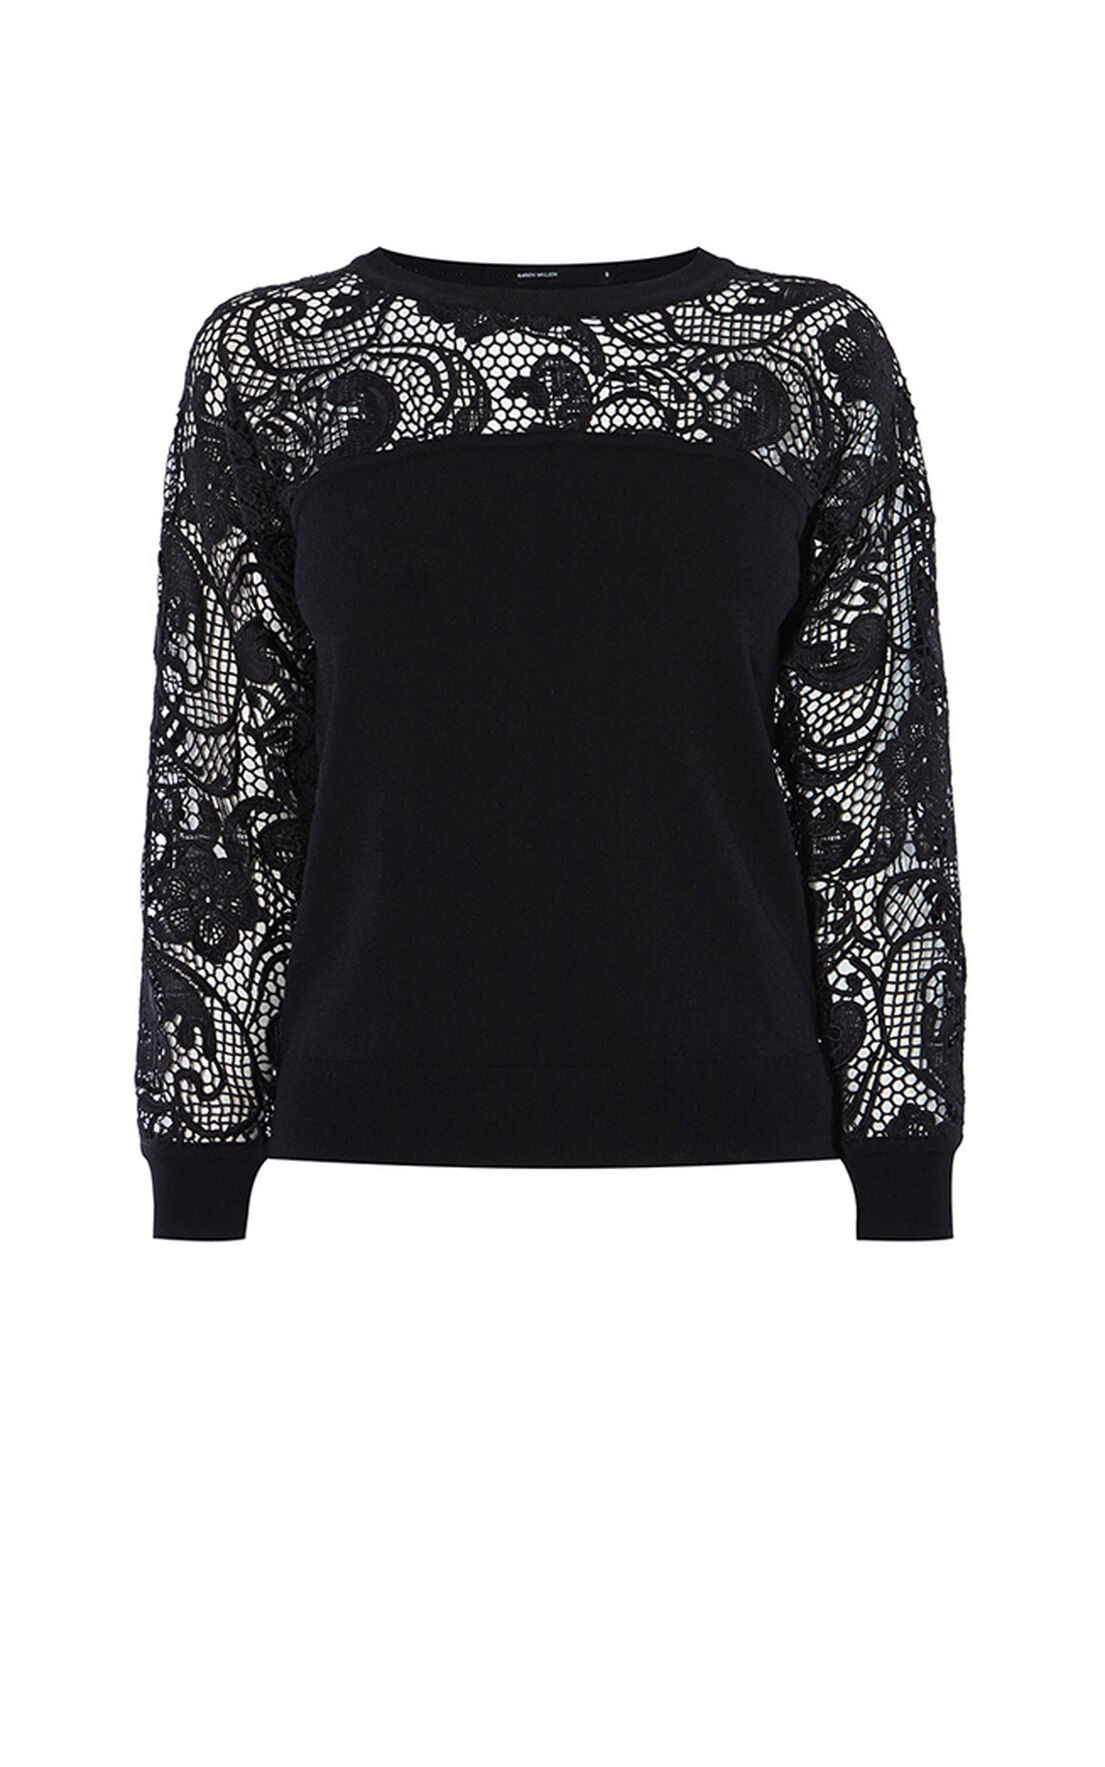 Karen Millen, LACE KNIT JUMPER Black 0